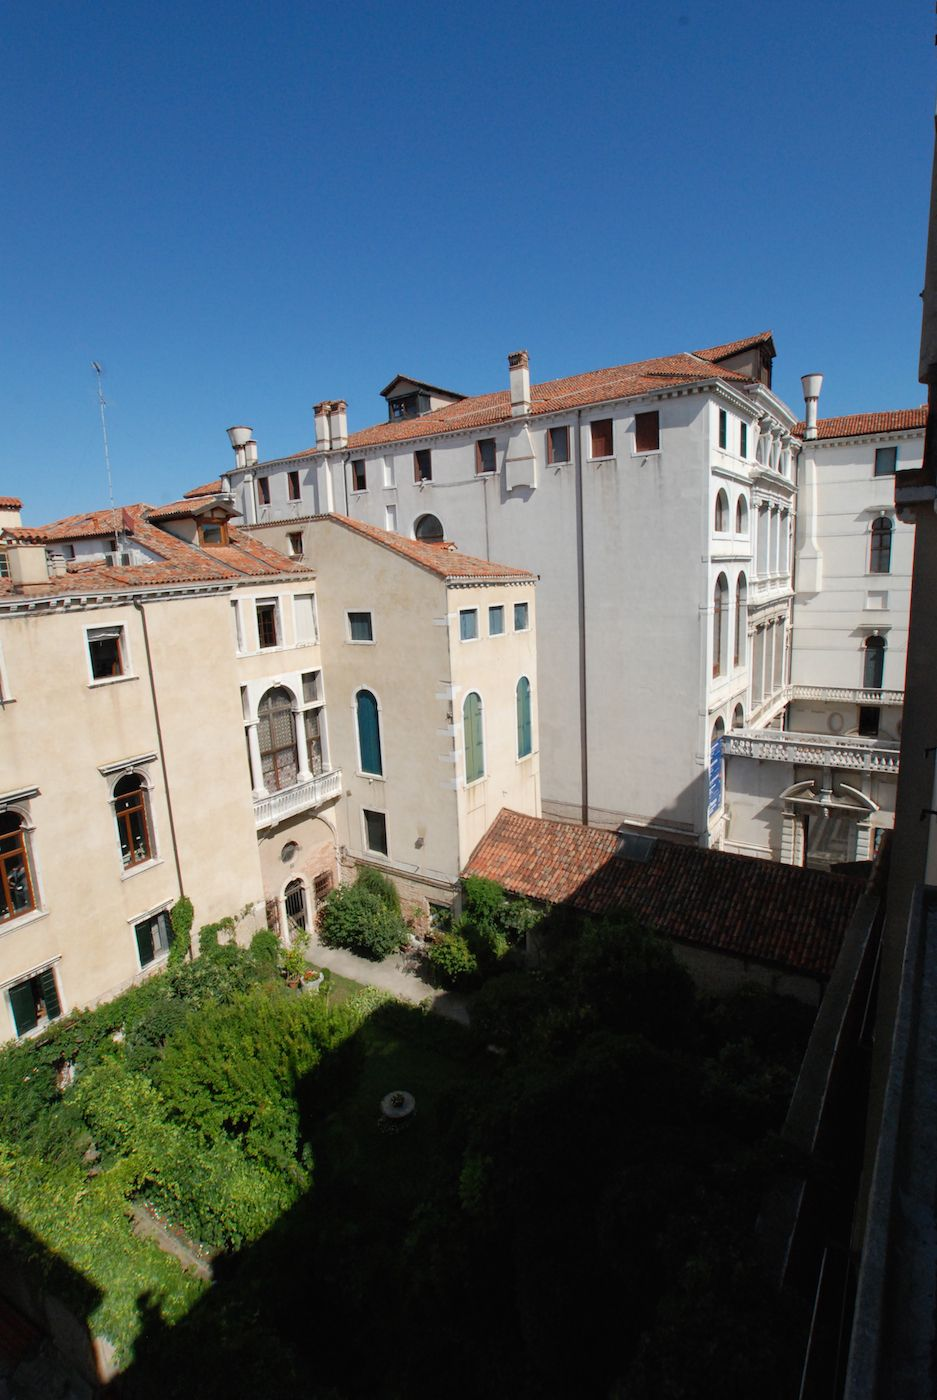 the view from the front terrace on Ca' Pesaro and gardens